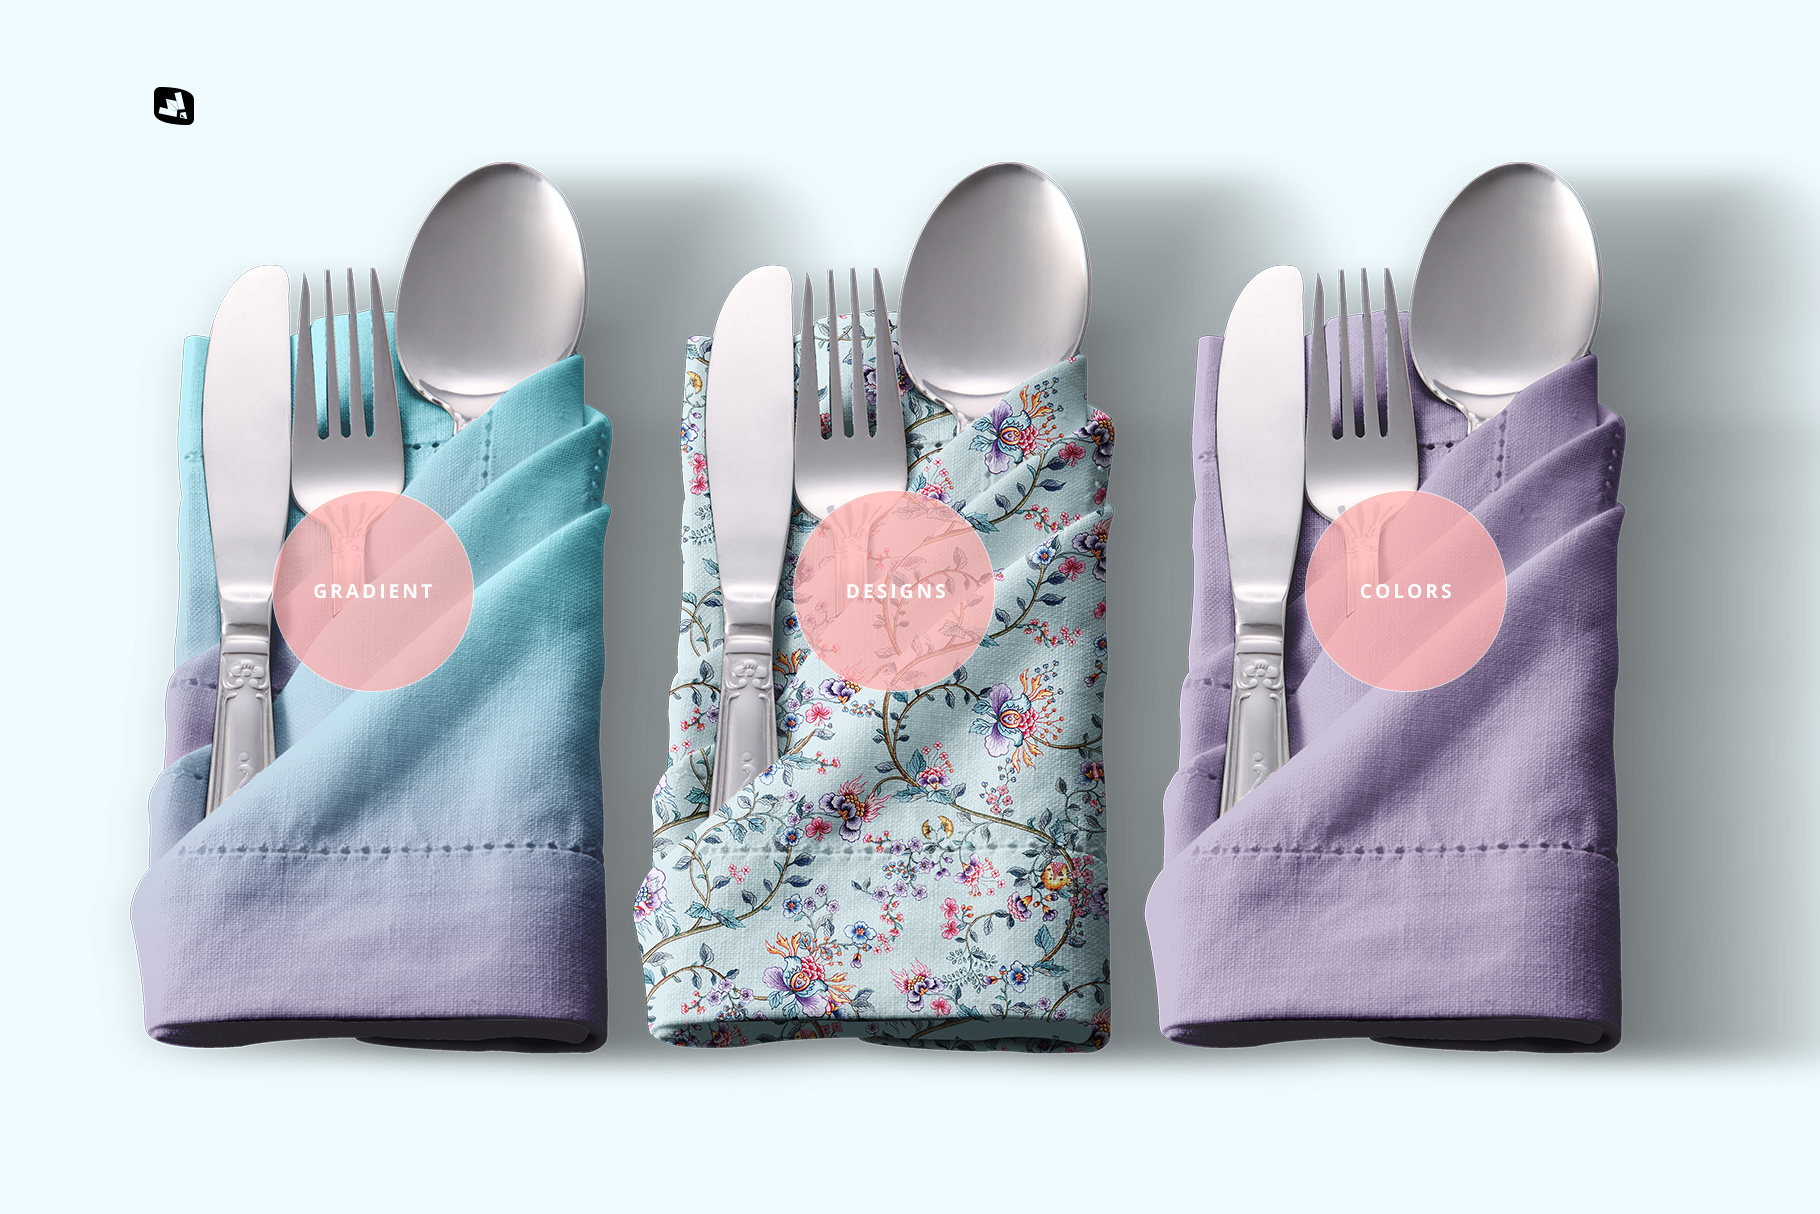 types of the folded napkin with utensils mockup